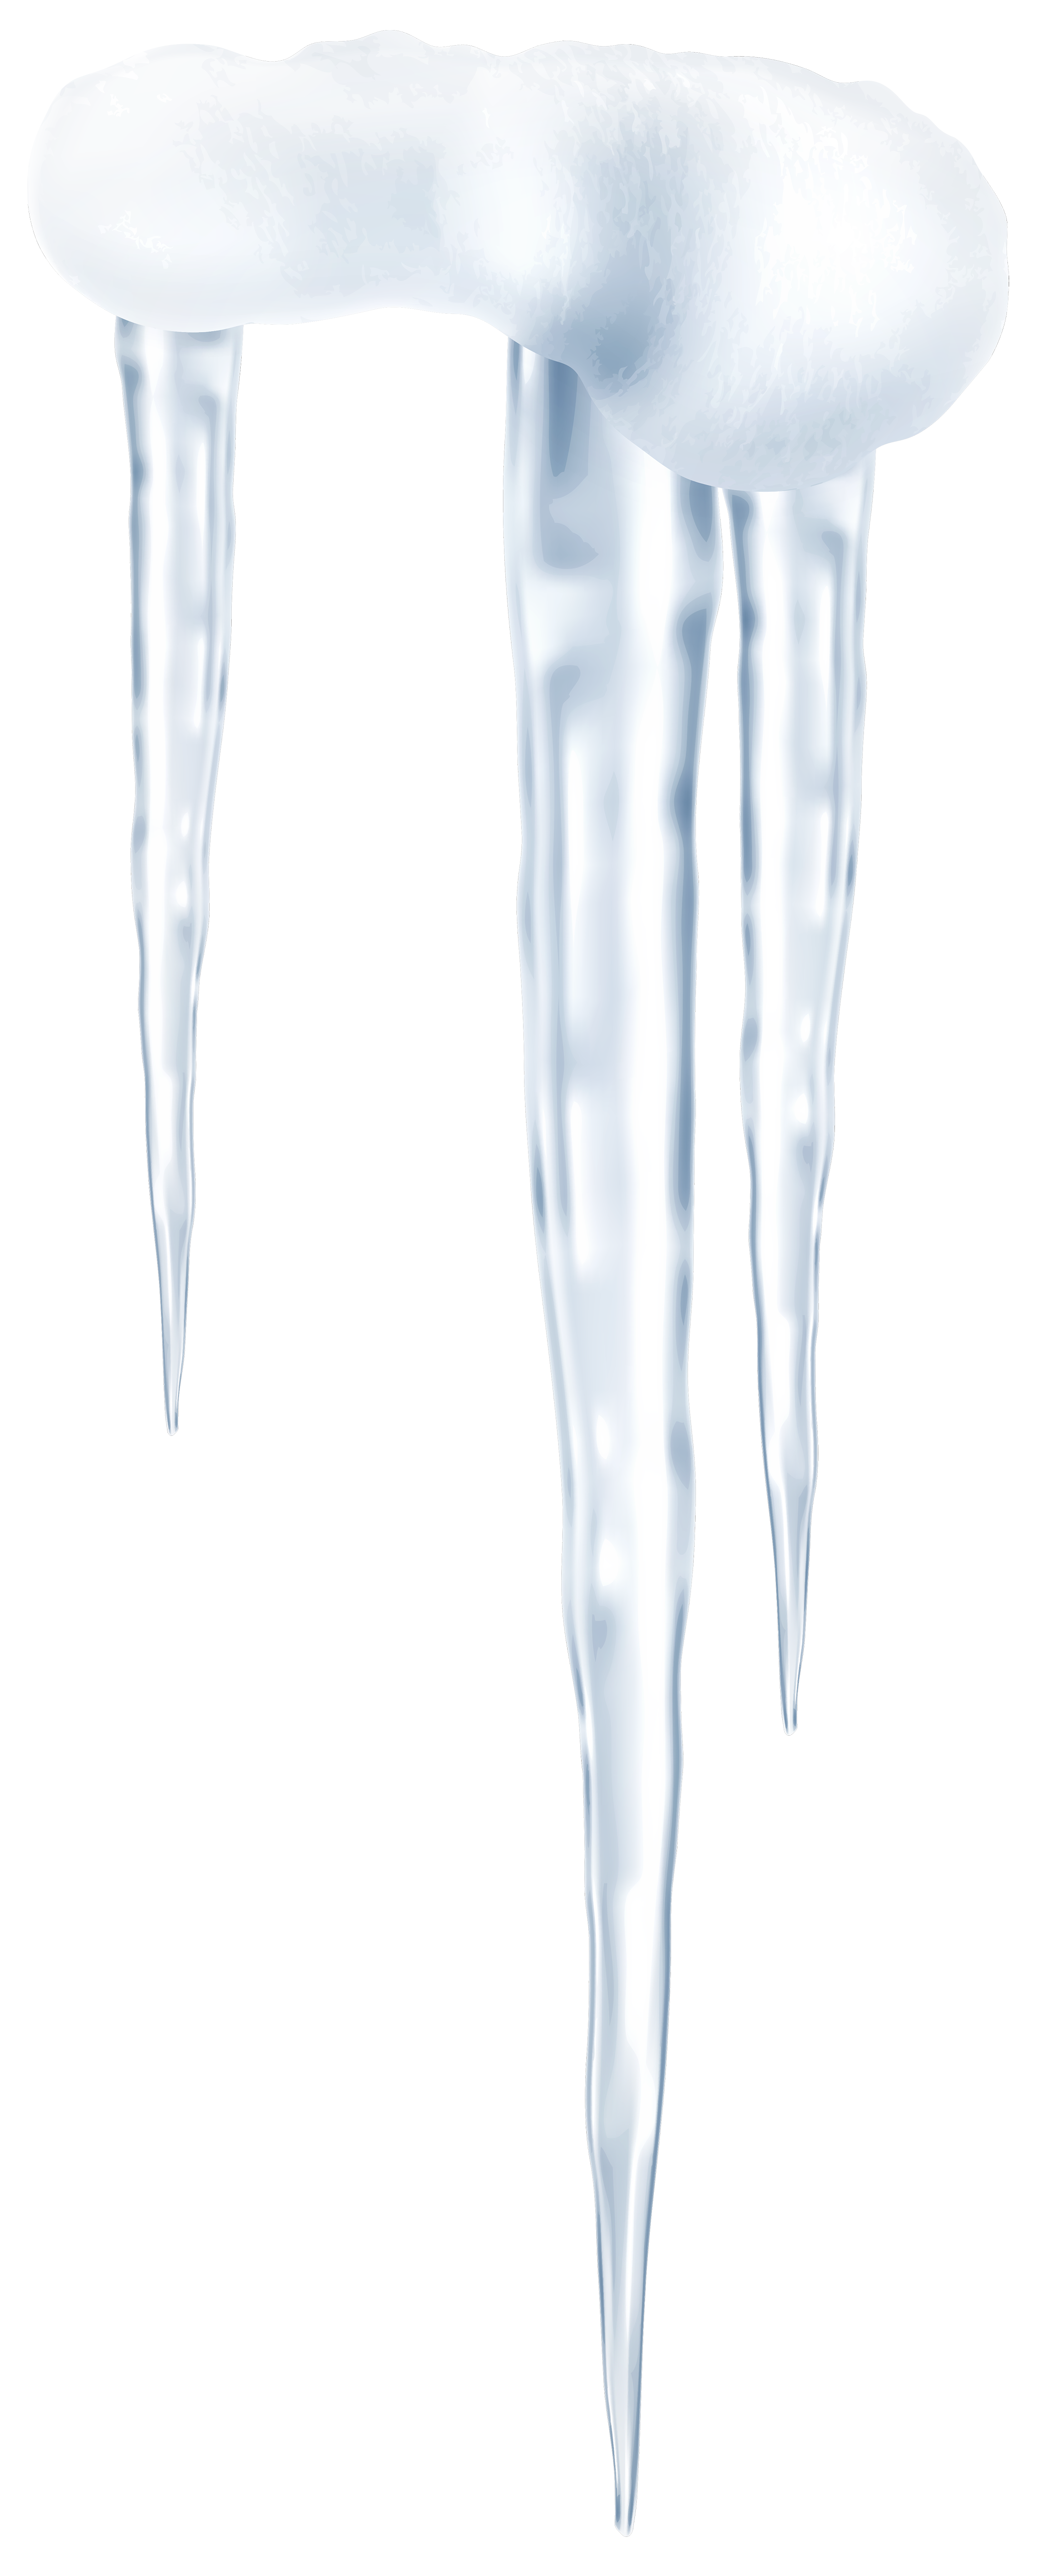 Icicles transparent small. Png clip art image